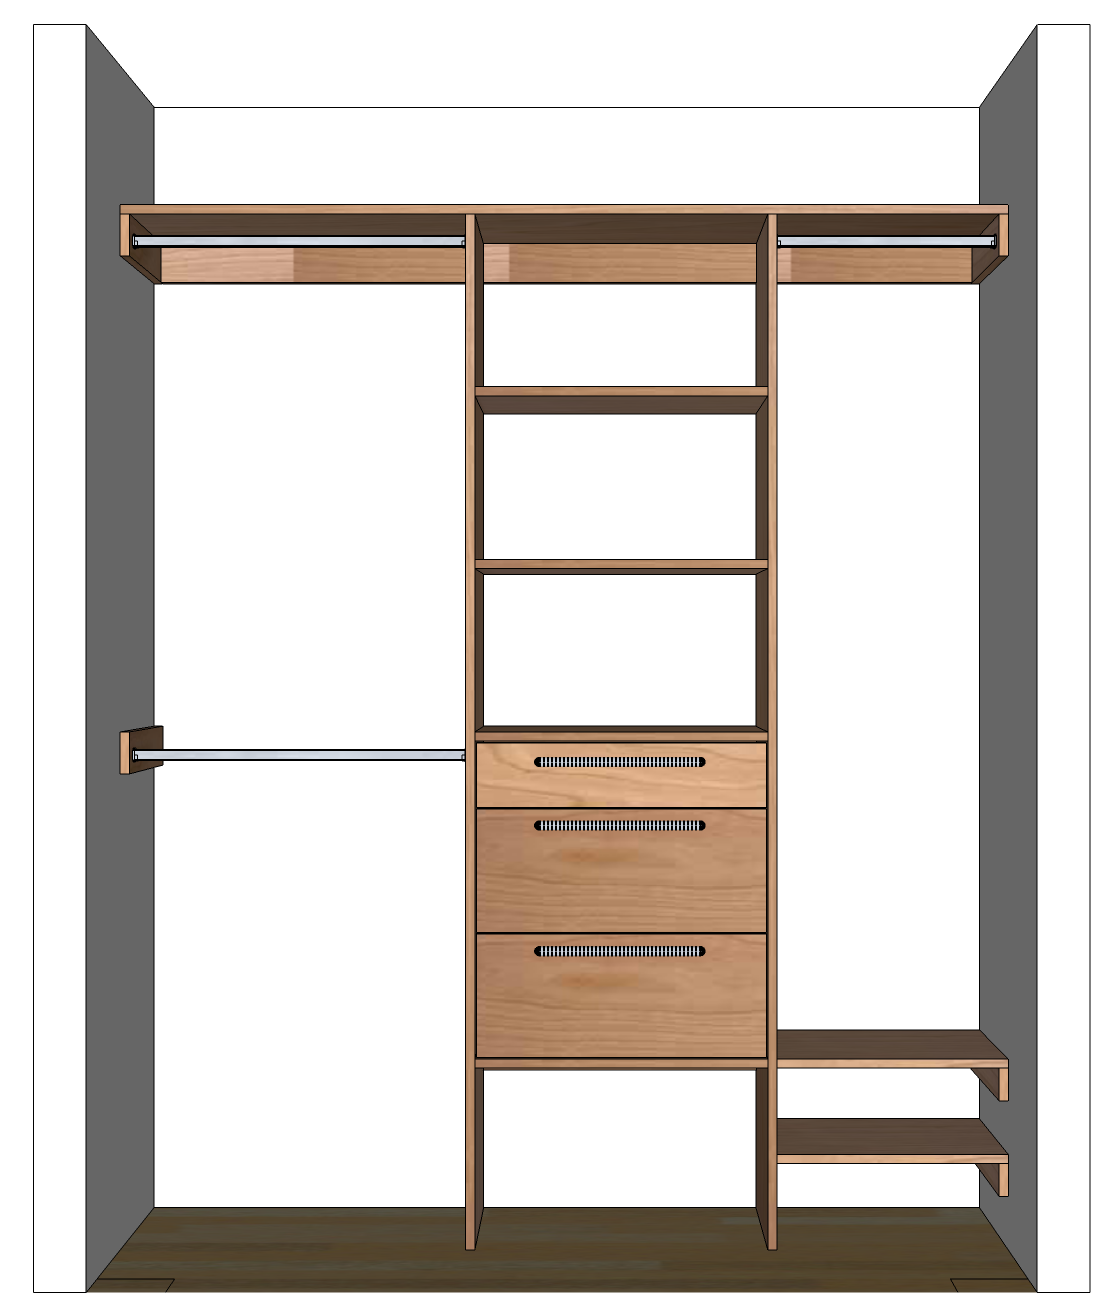 diy closet organizer plans for 5 39 to 8 39 closet ForHow To Design Closet Storage